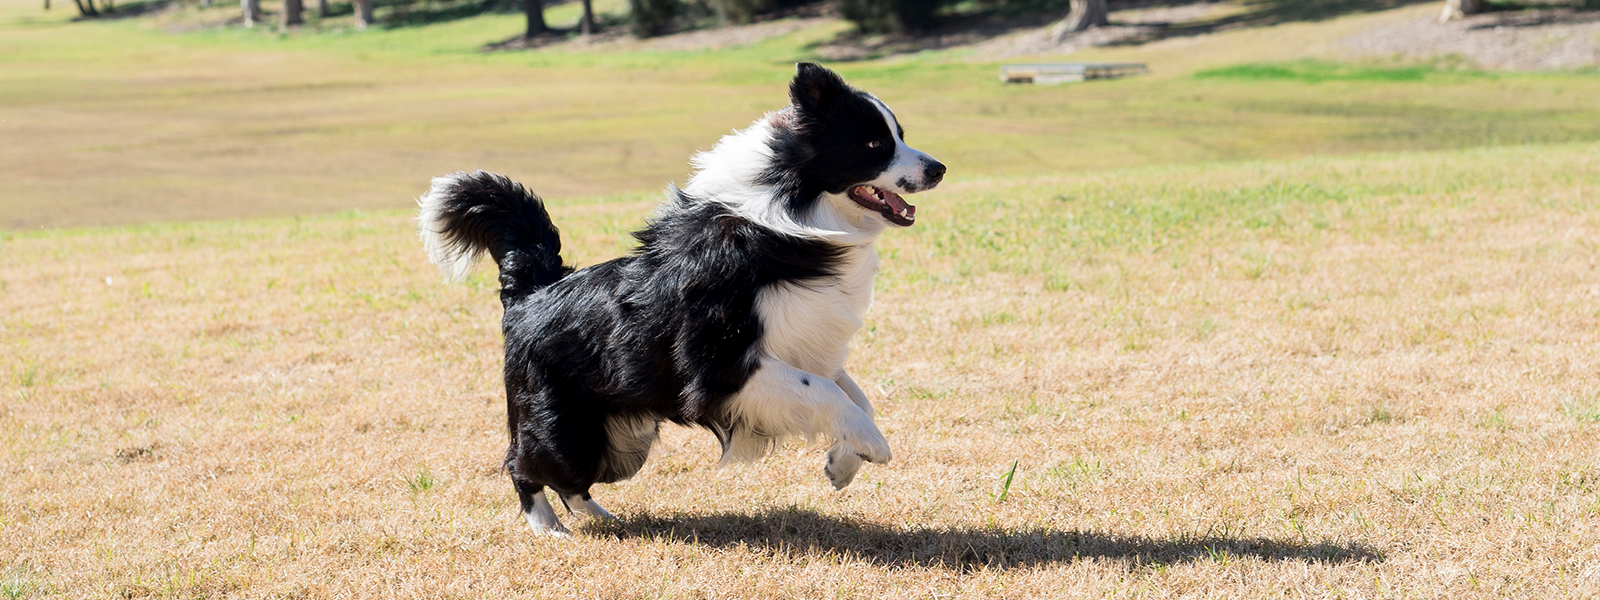 Image of a dog frolicking in the park